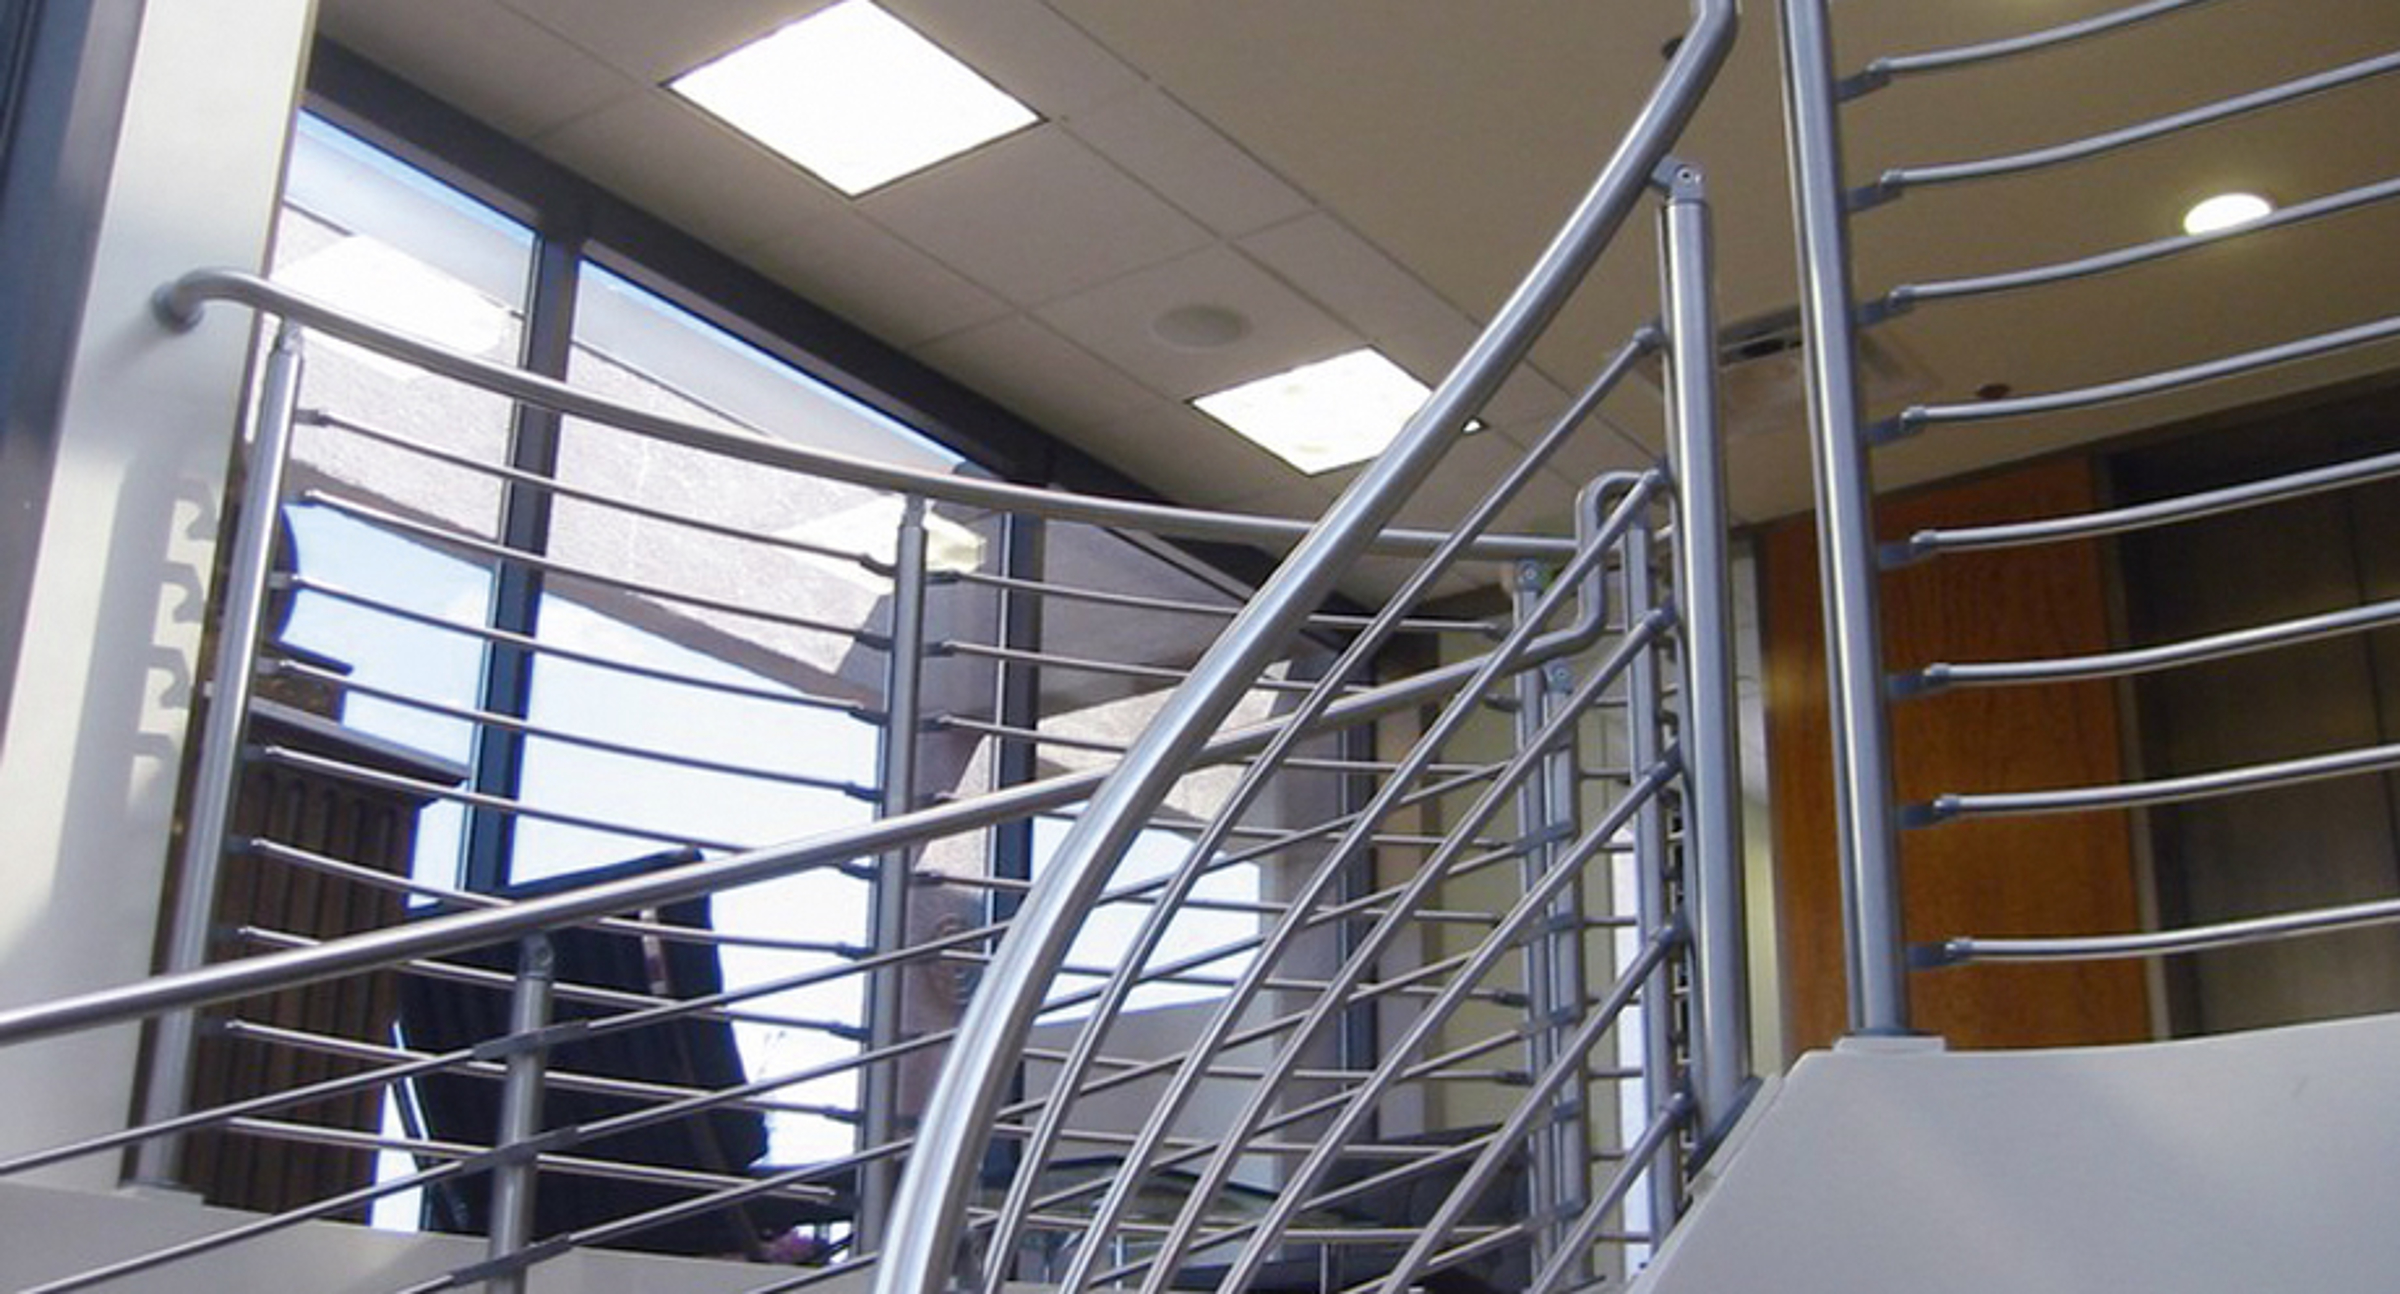 csm_Stainless_Steel_Railings_02_b198f0869b